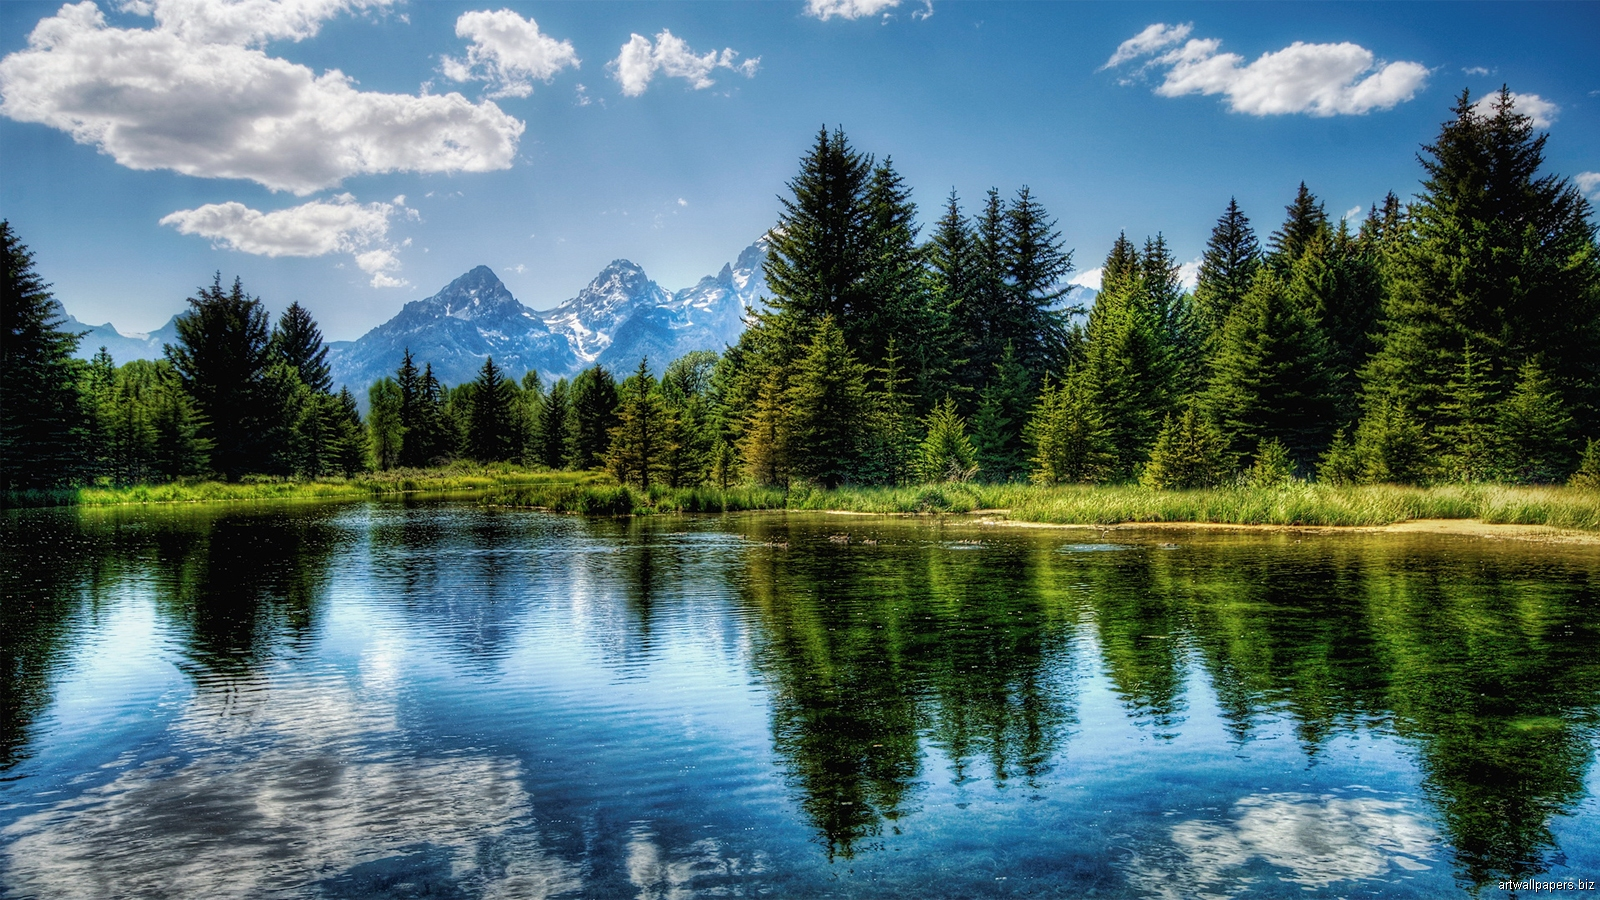 natural image hd wallpaper,reflection,natural landscape,nature,body of water,sky